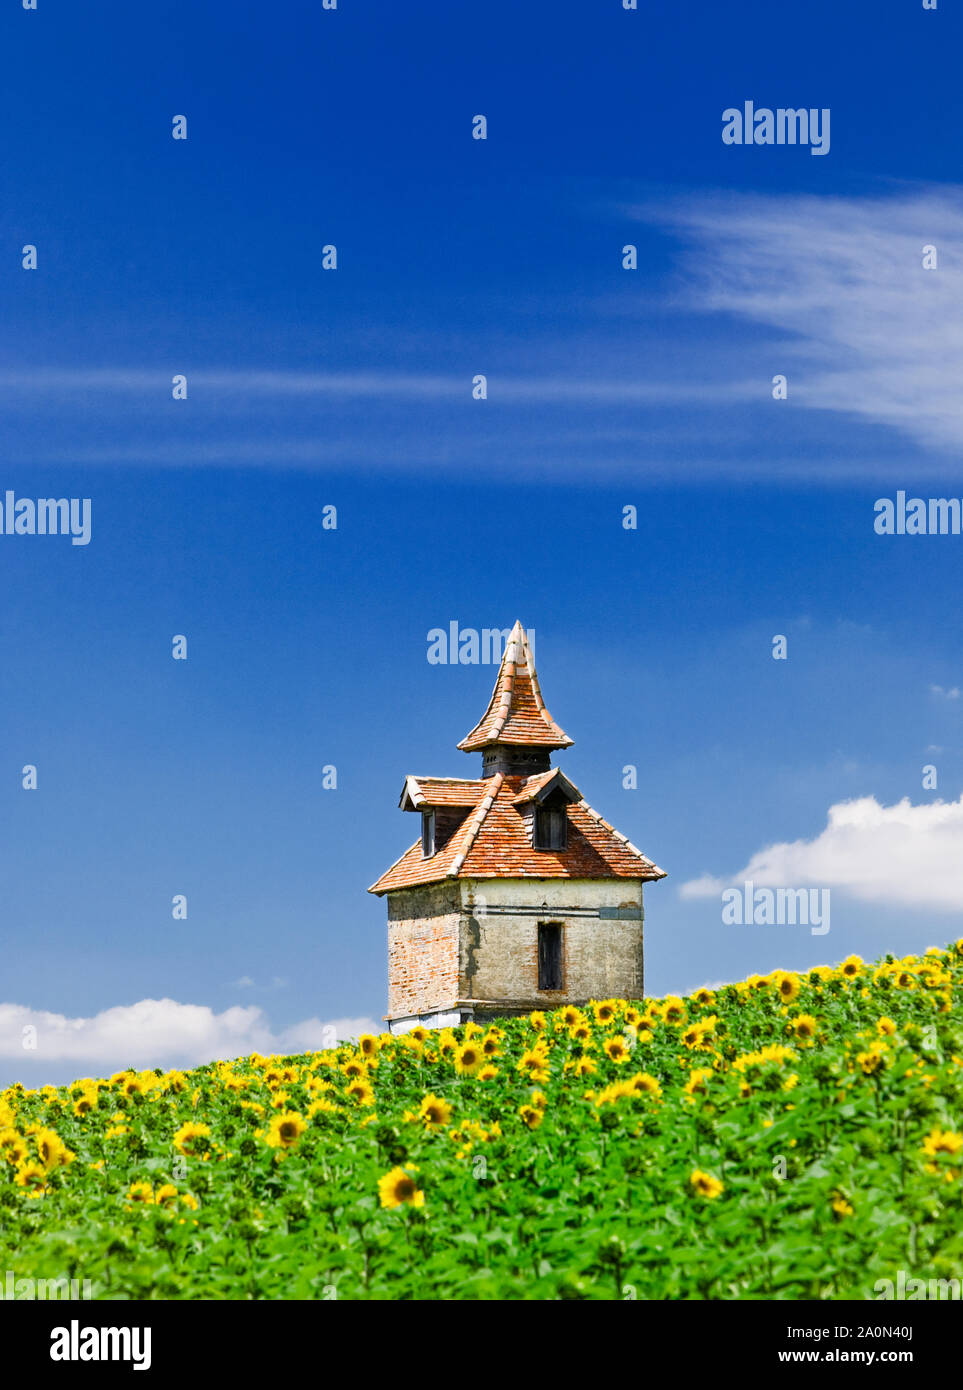 Pigeon loft or pigeonniere in the South of France Stock Photo